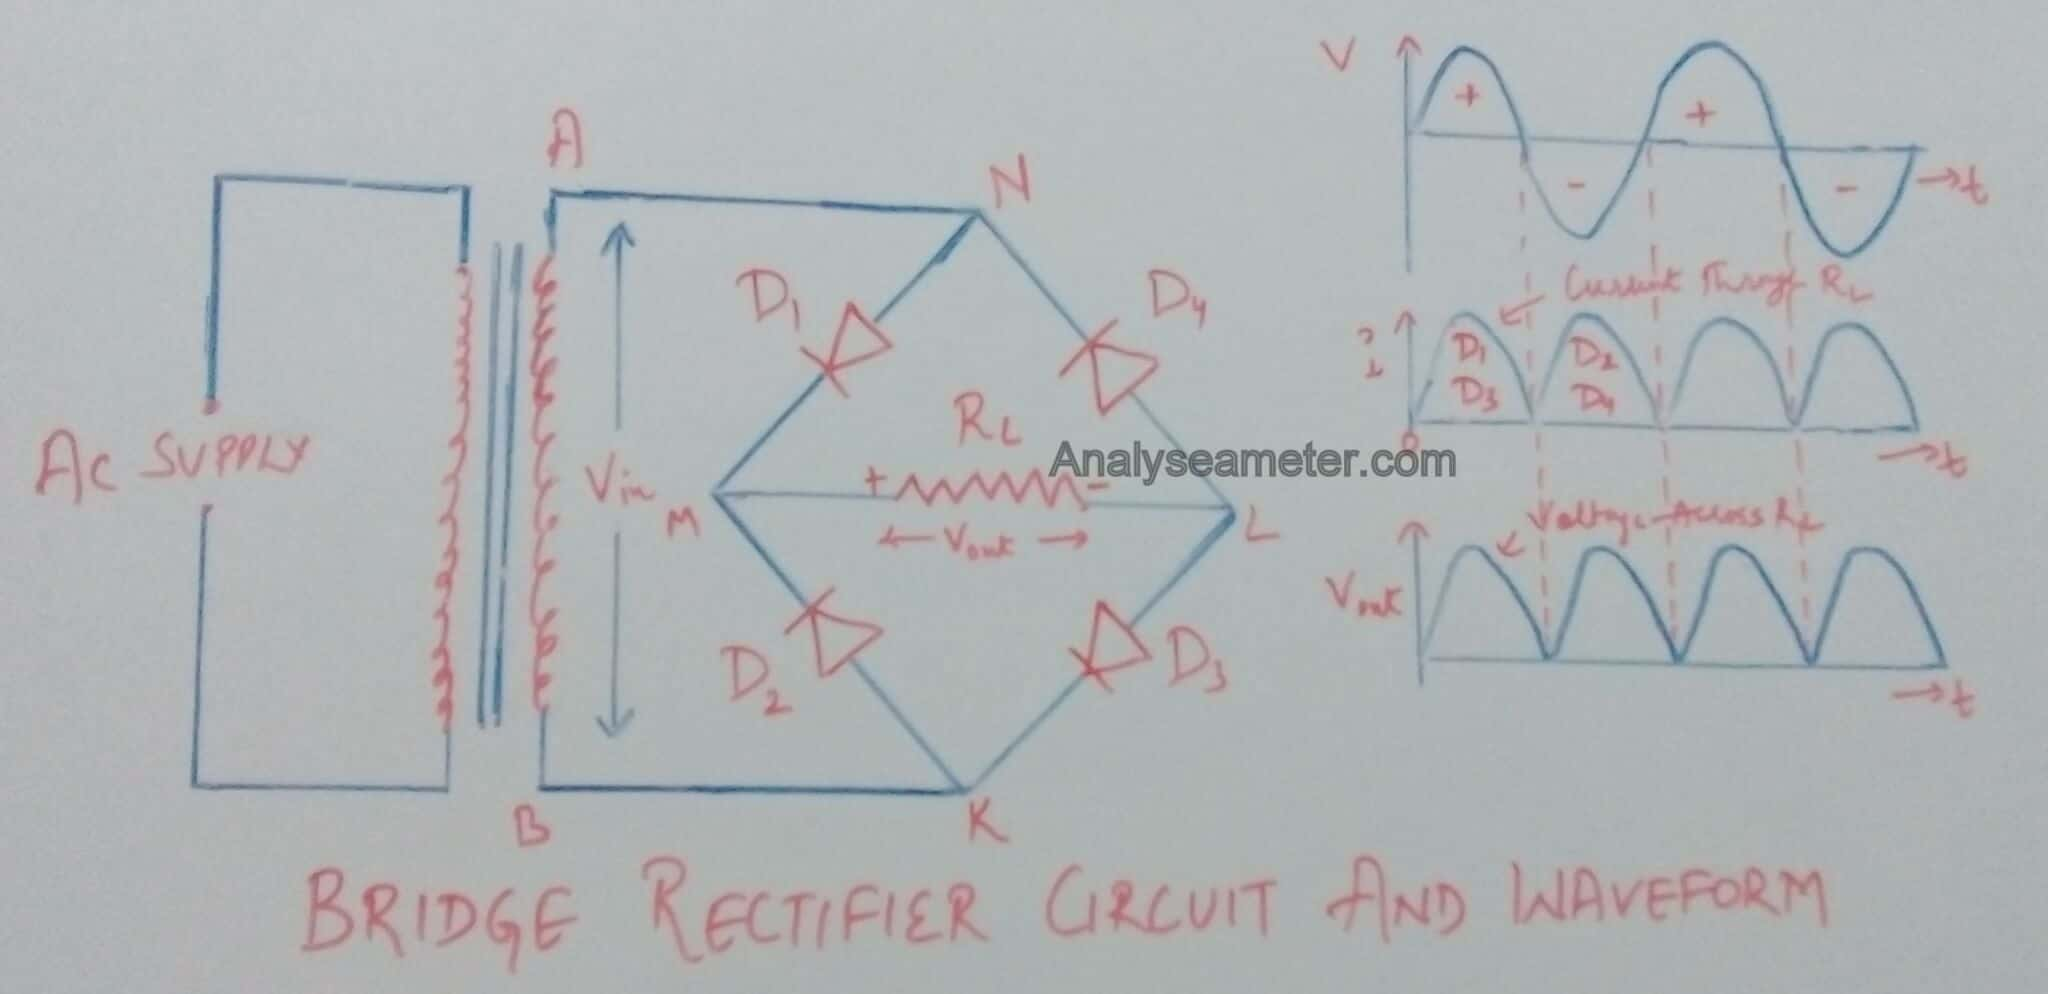 full wave bridge rectifier wiring diagram sentence diagramming exercises circuit and operation  analyse a meter